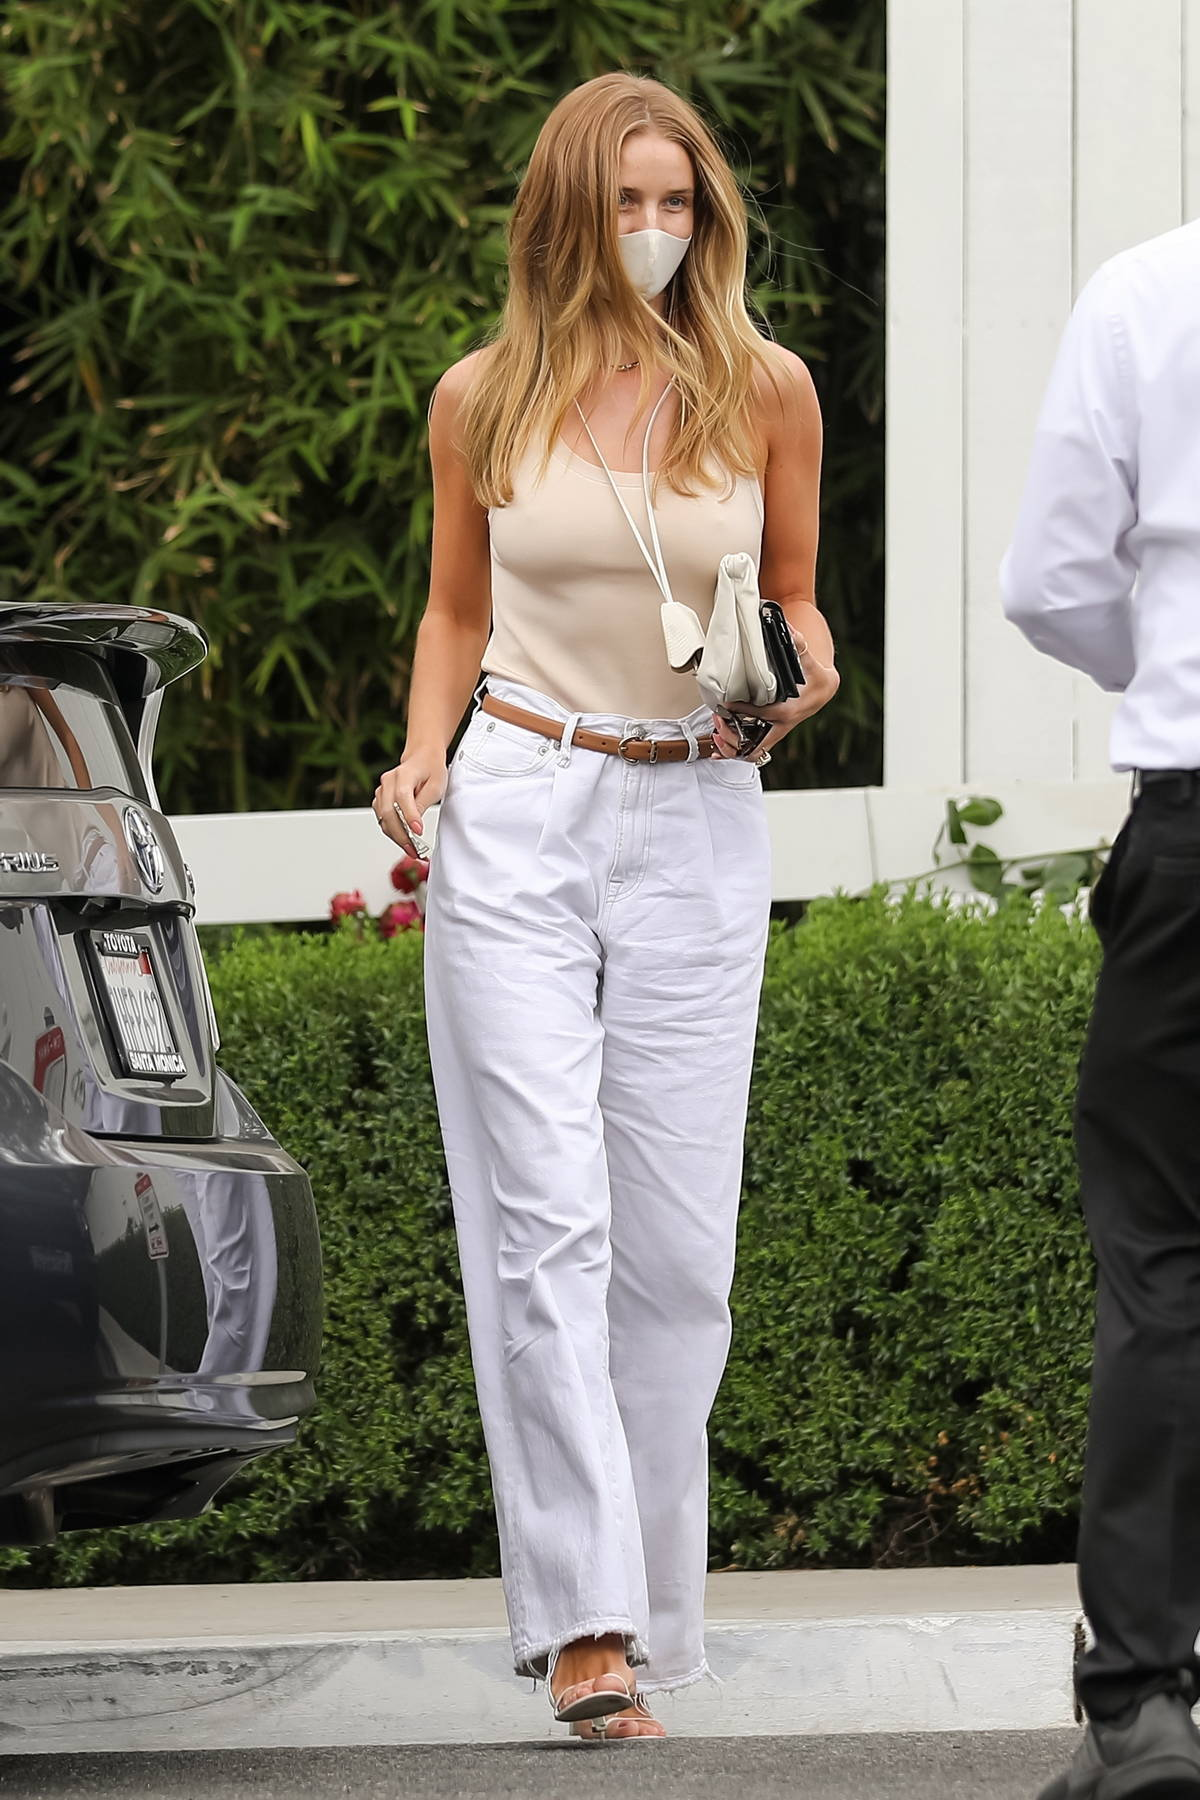 Rosie Huntington-Whiteley looks chic while attending a private event at the San Vicente Bungalows in West Hollywood, California